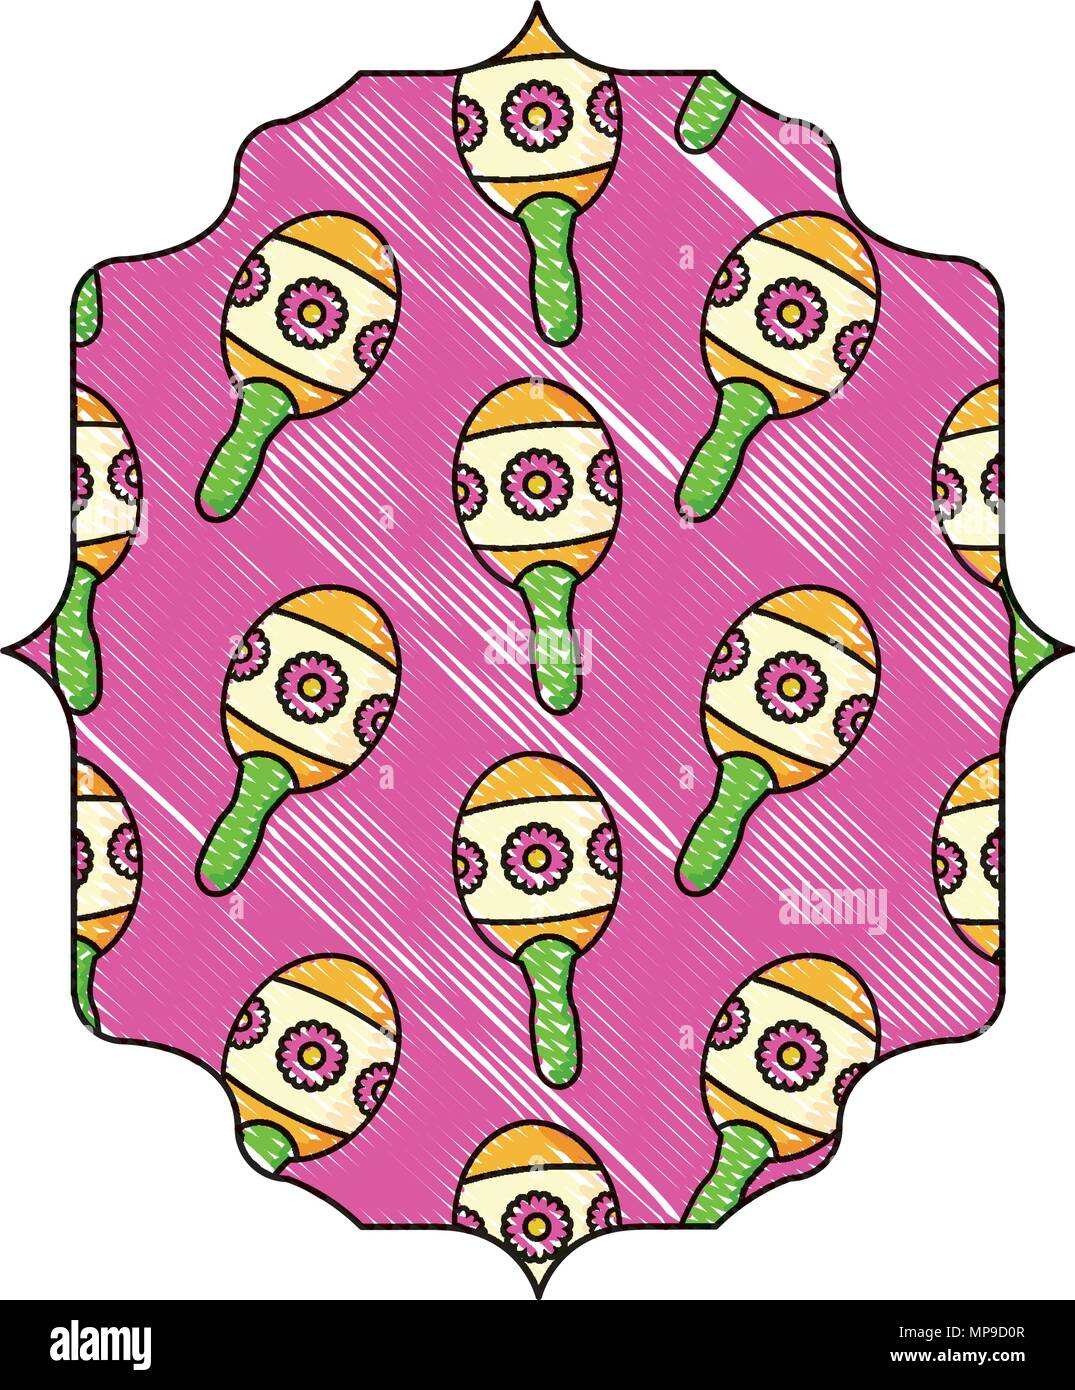 arabic frame with Mexican maracas pattern over white background, vector illustration - Stock Image